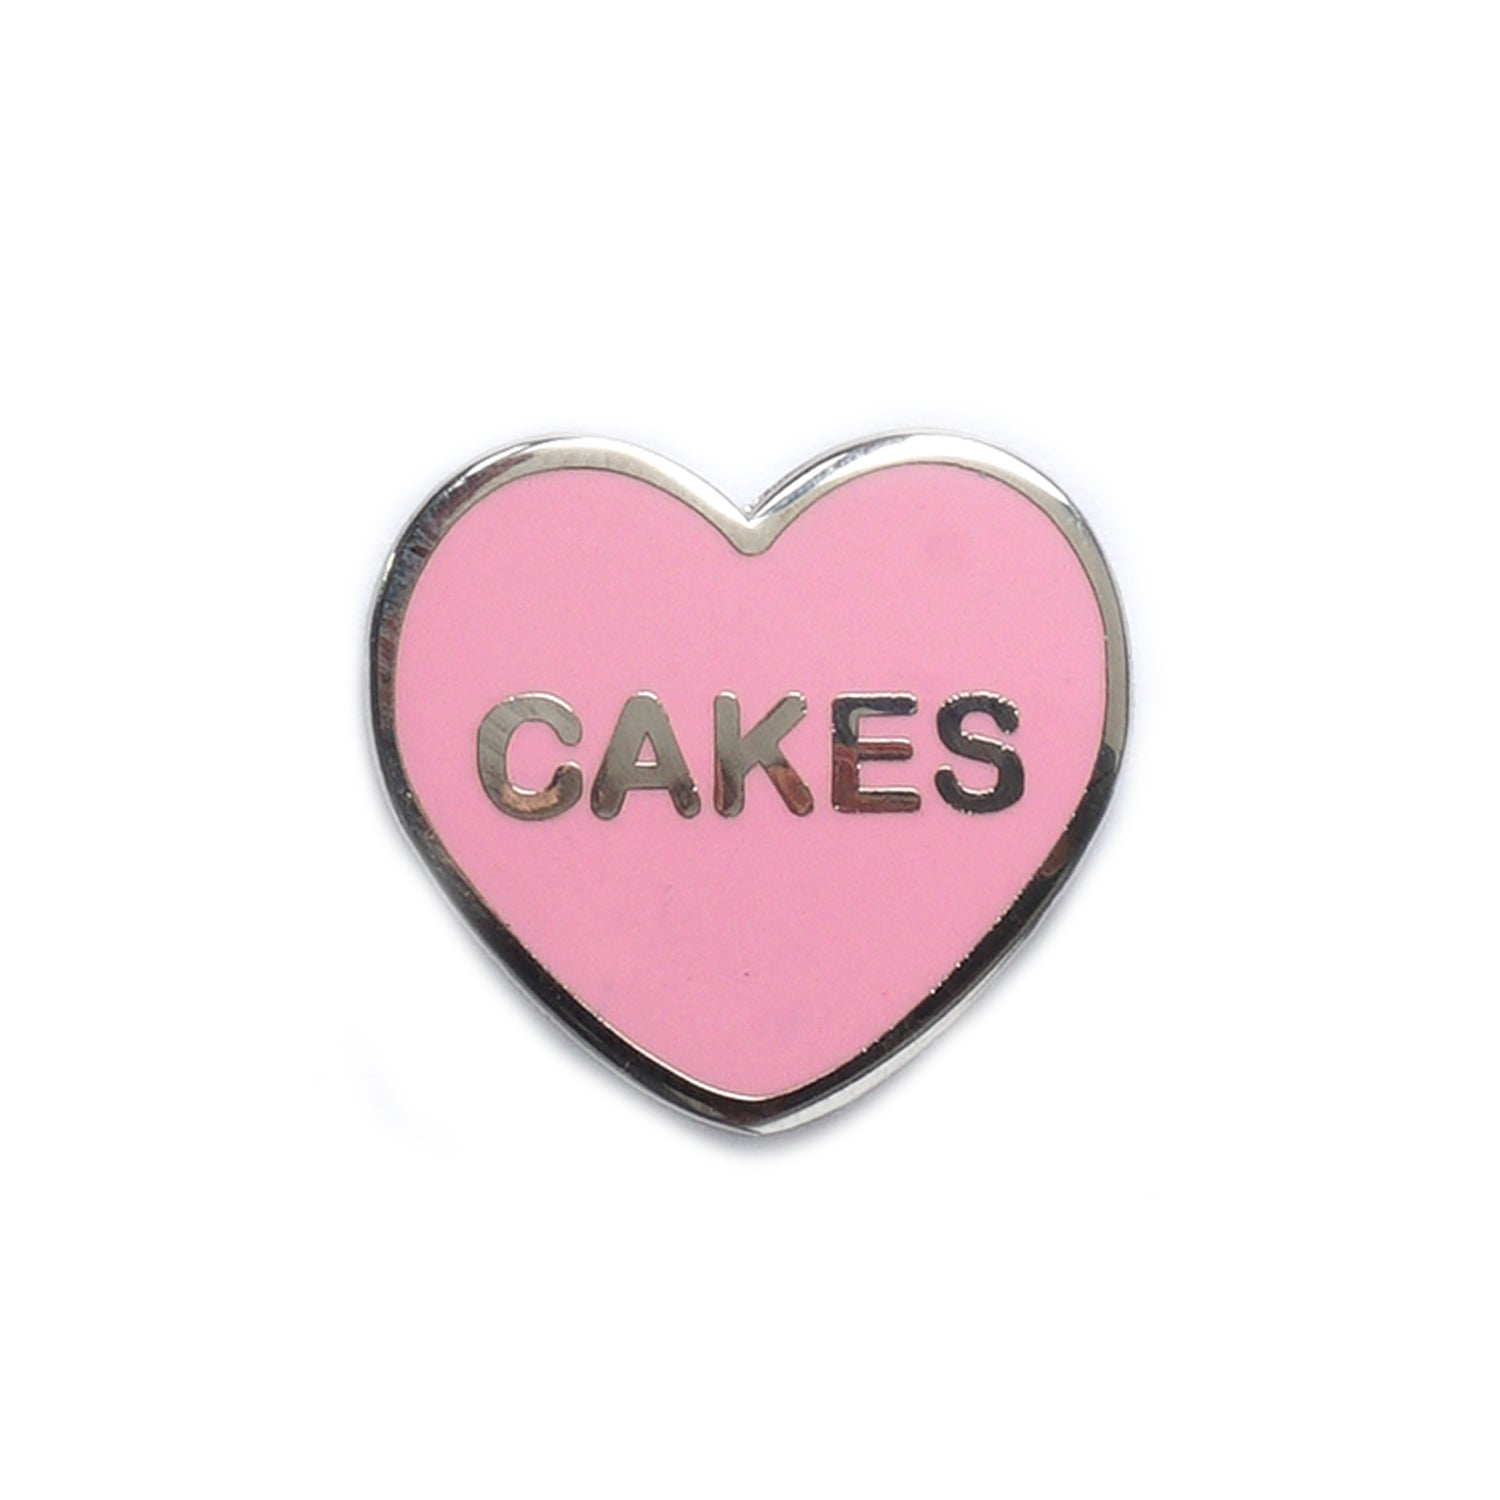 Cakes Candy Heart Pin